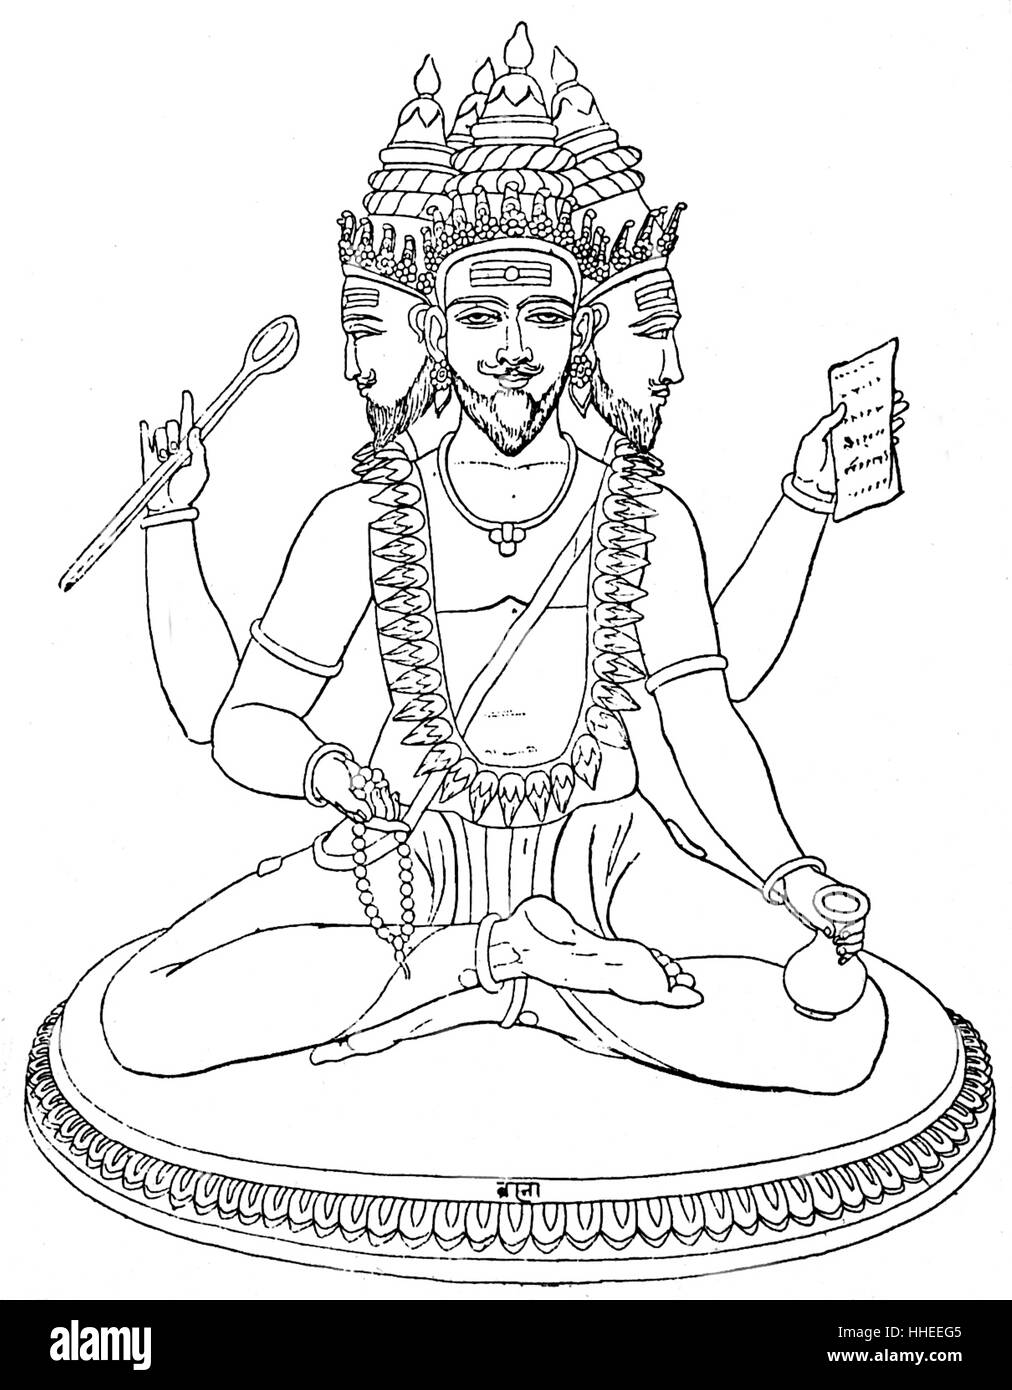 Illustration depicting Brahma, the creator god in the Trimurti of Hinduism. Dated 18th Century - Stock Image